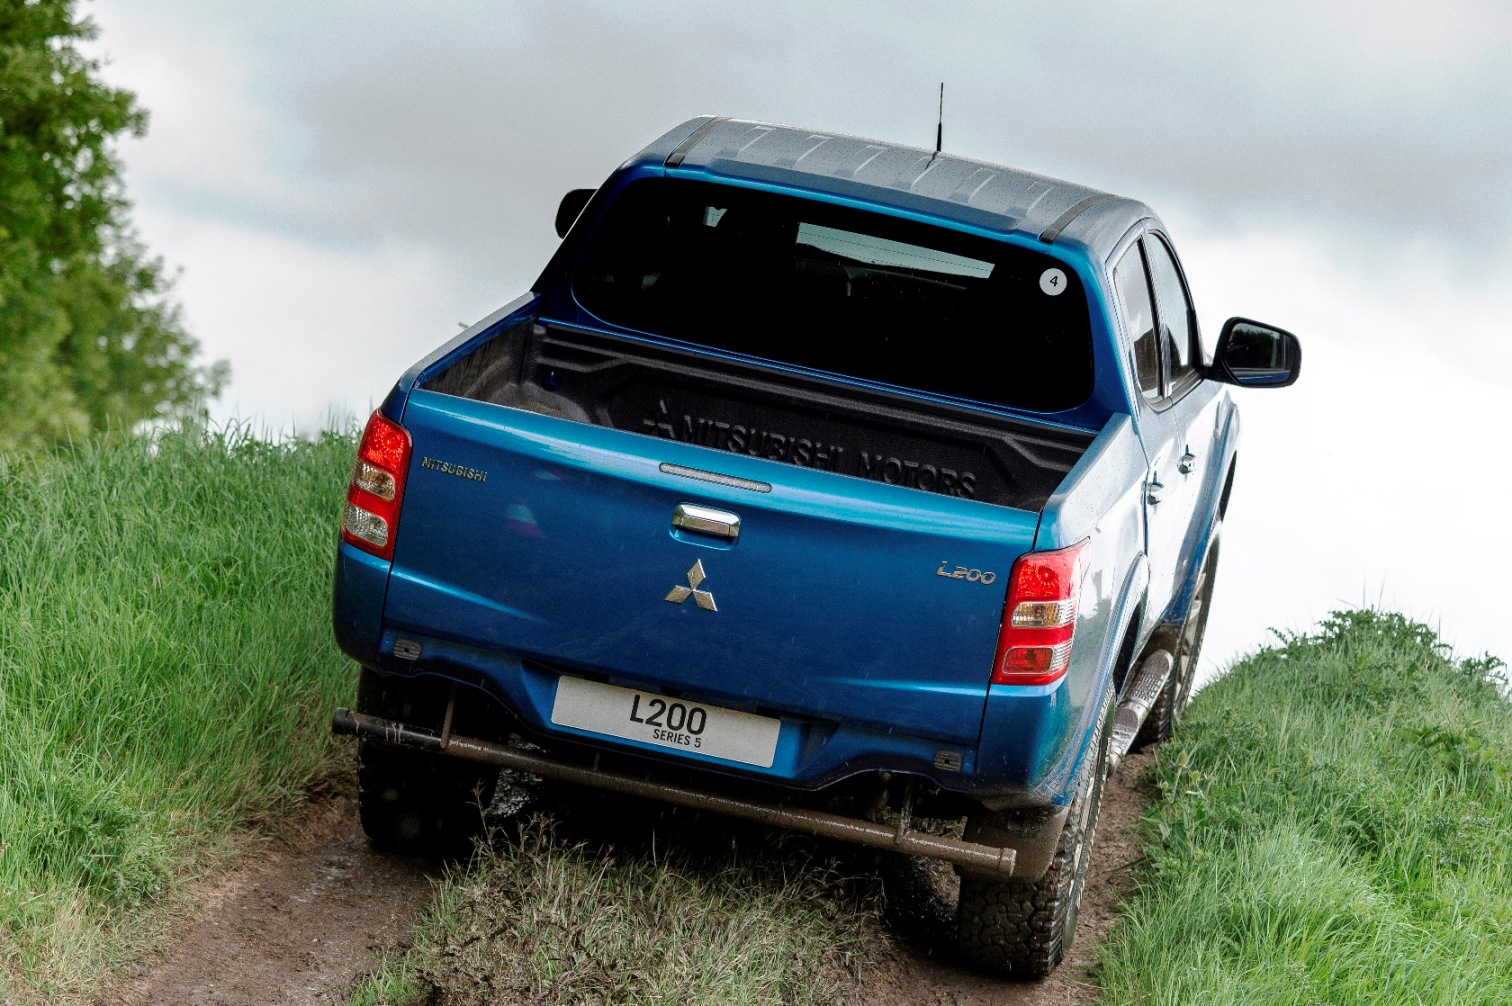 Mitsubishi new L200 Double Cab rear off road action